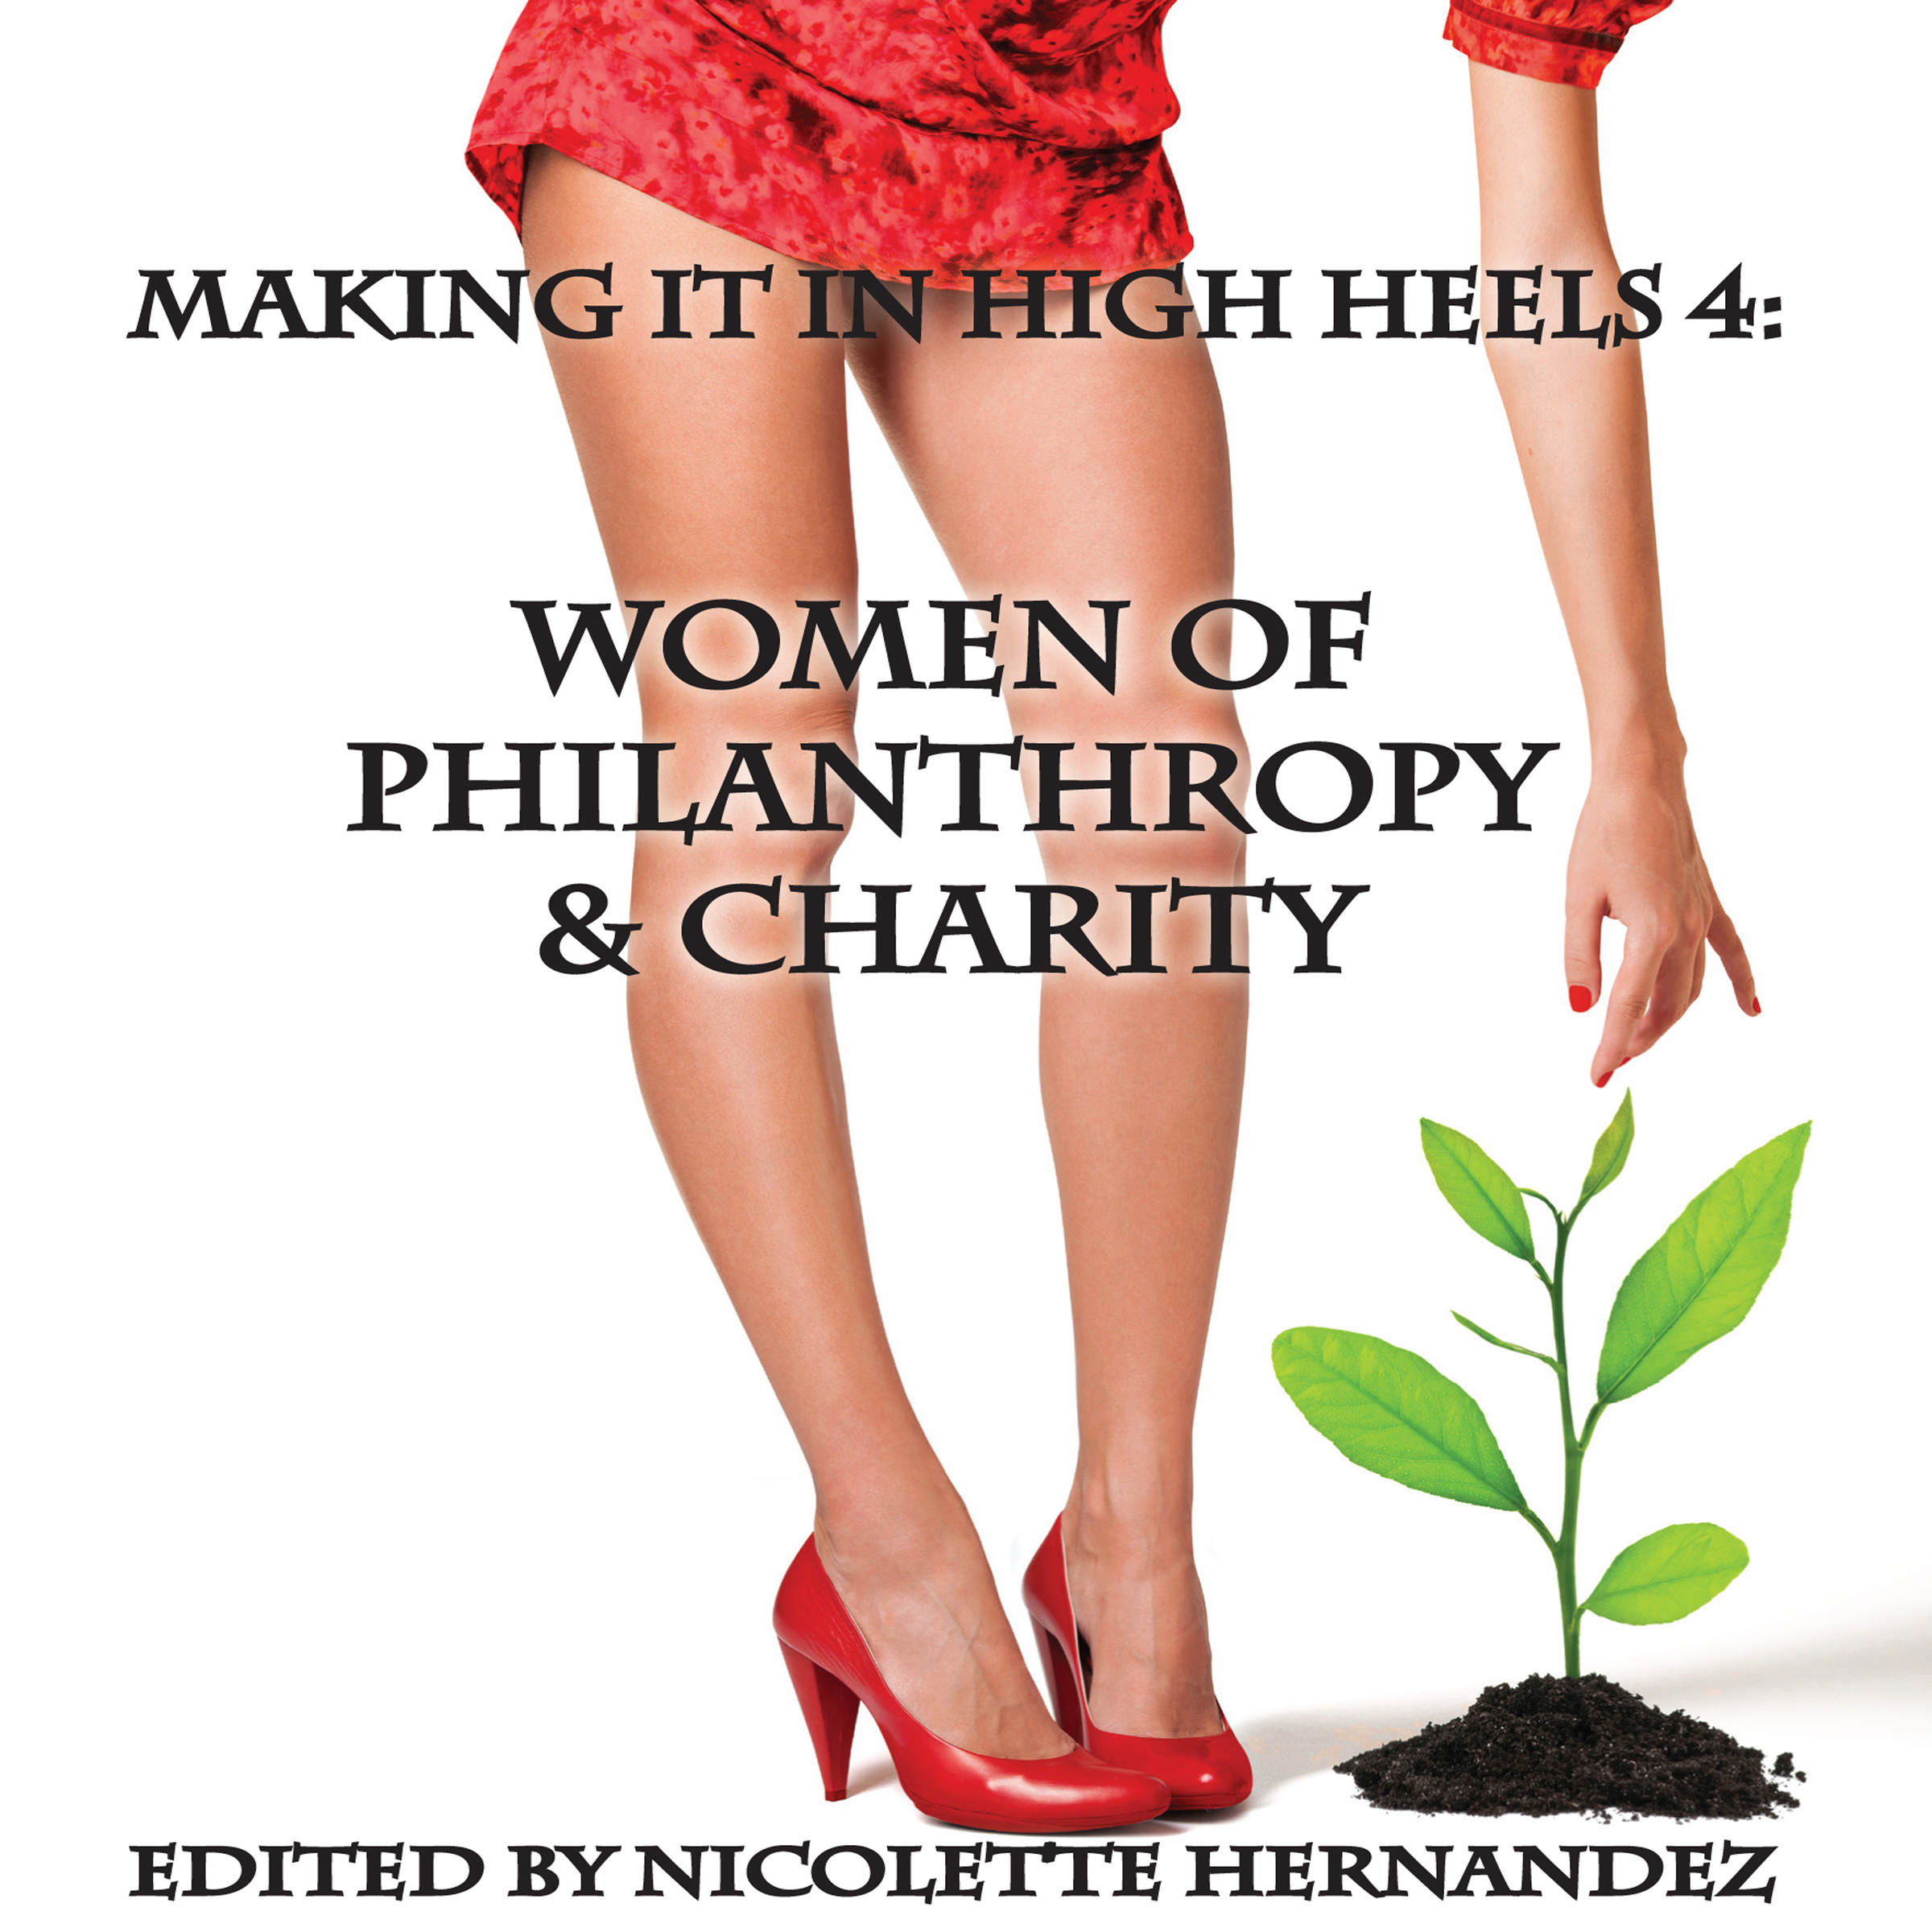 Printable Making It In High Heels 4: Women of Philanthropy & Charity Audiobook Cover Art